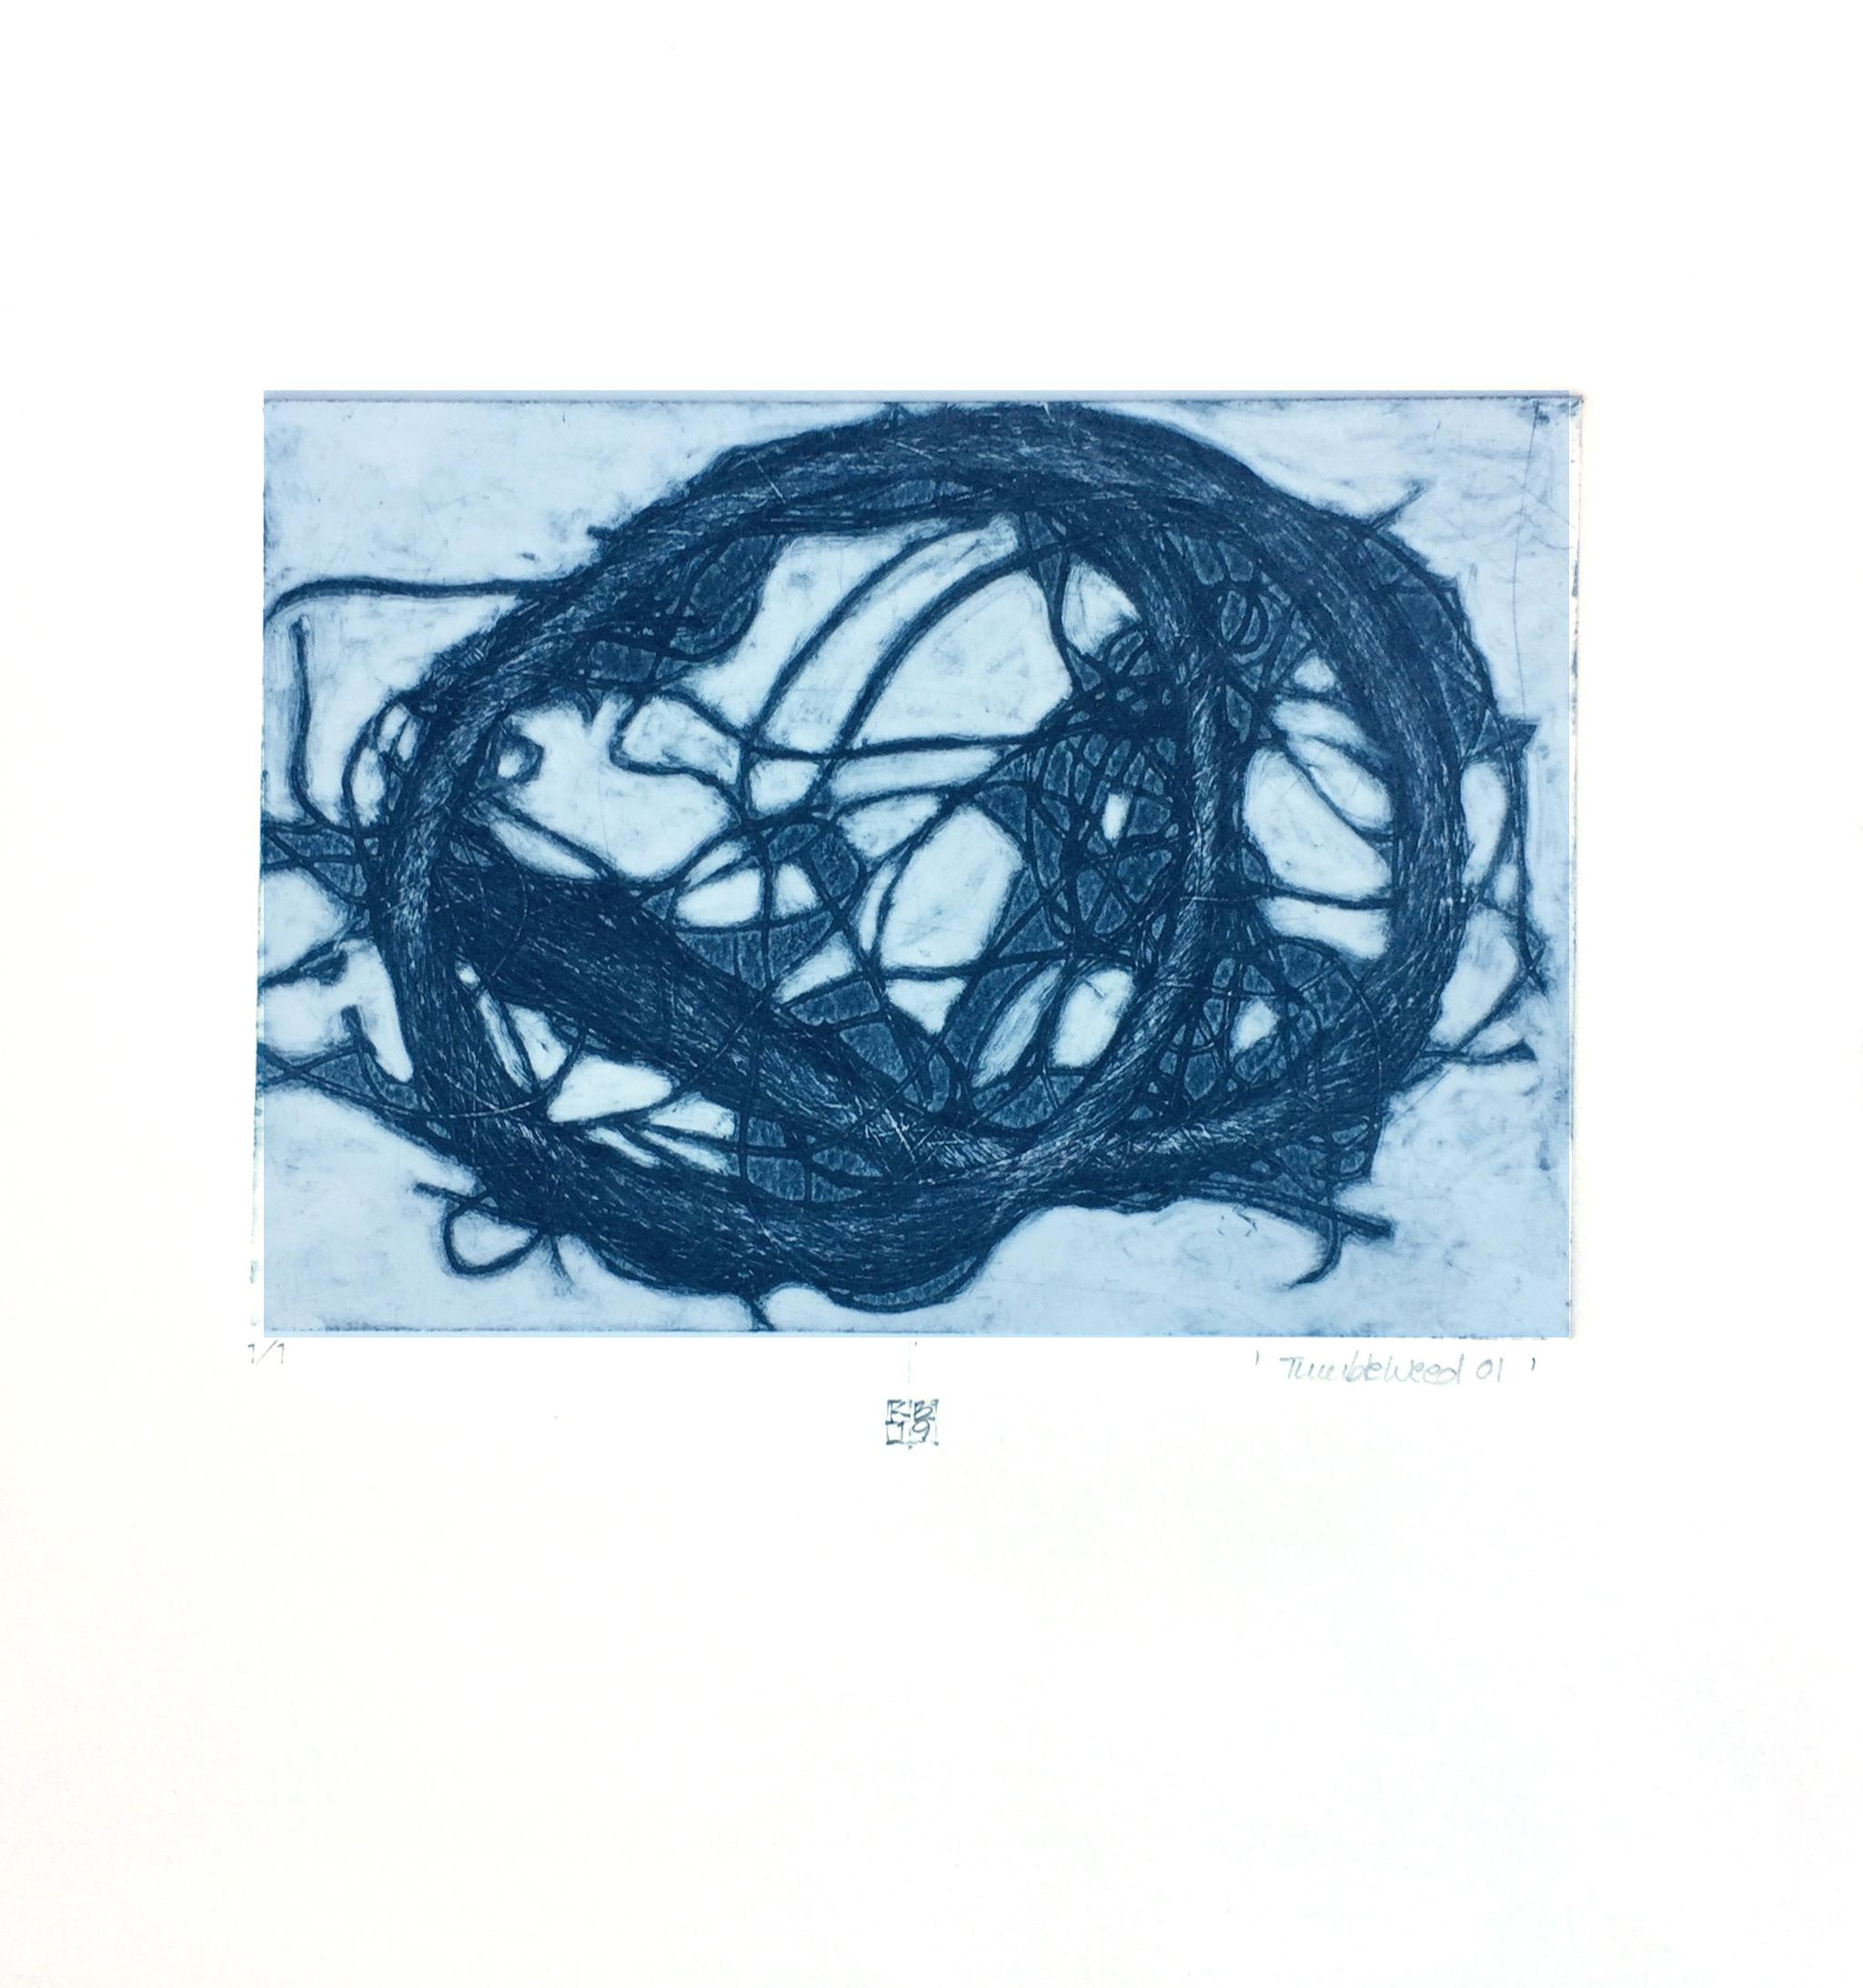 TumbleWeed 01, abstract mixed media on paper, blue